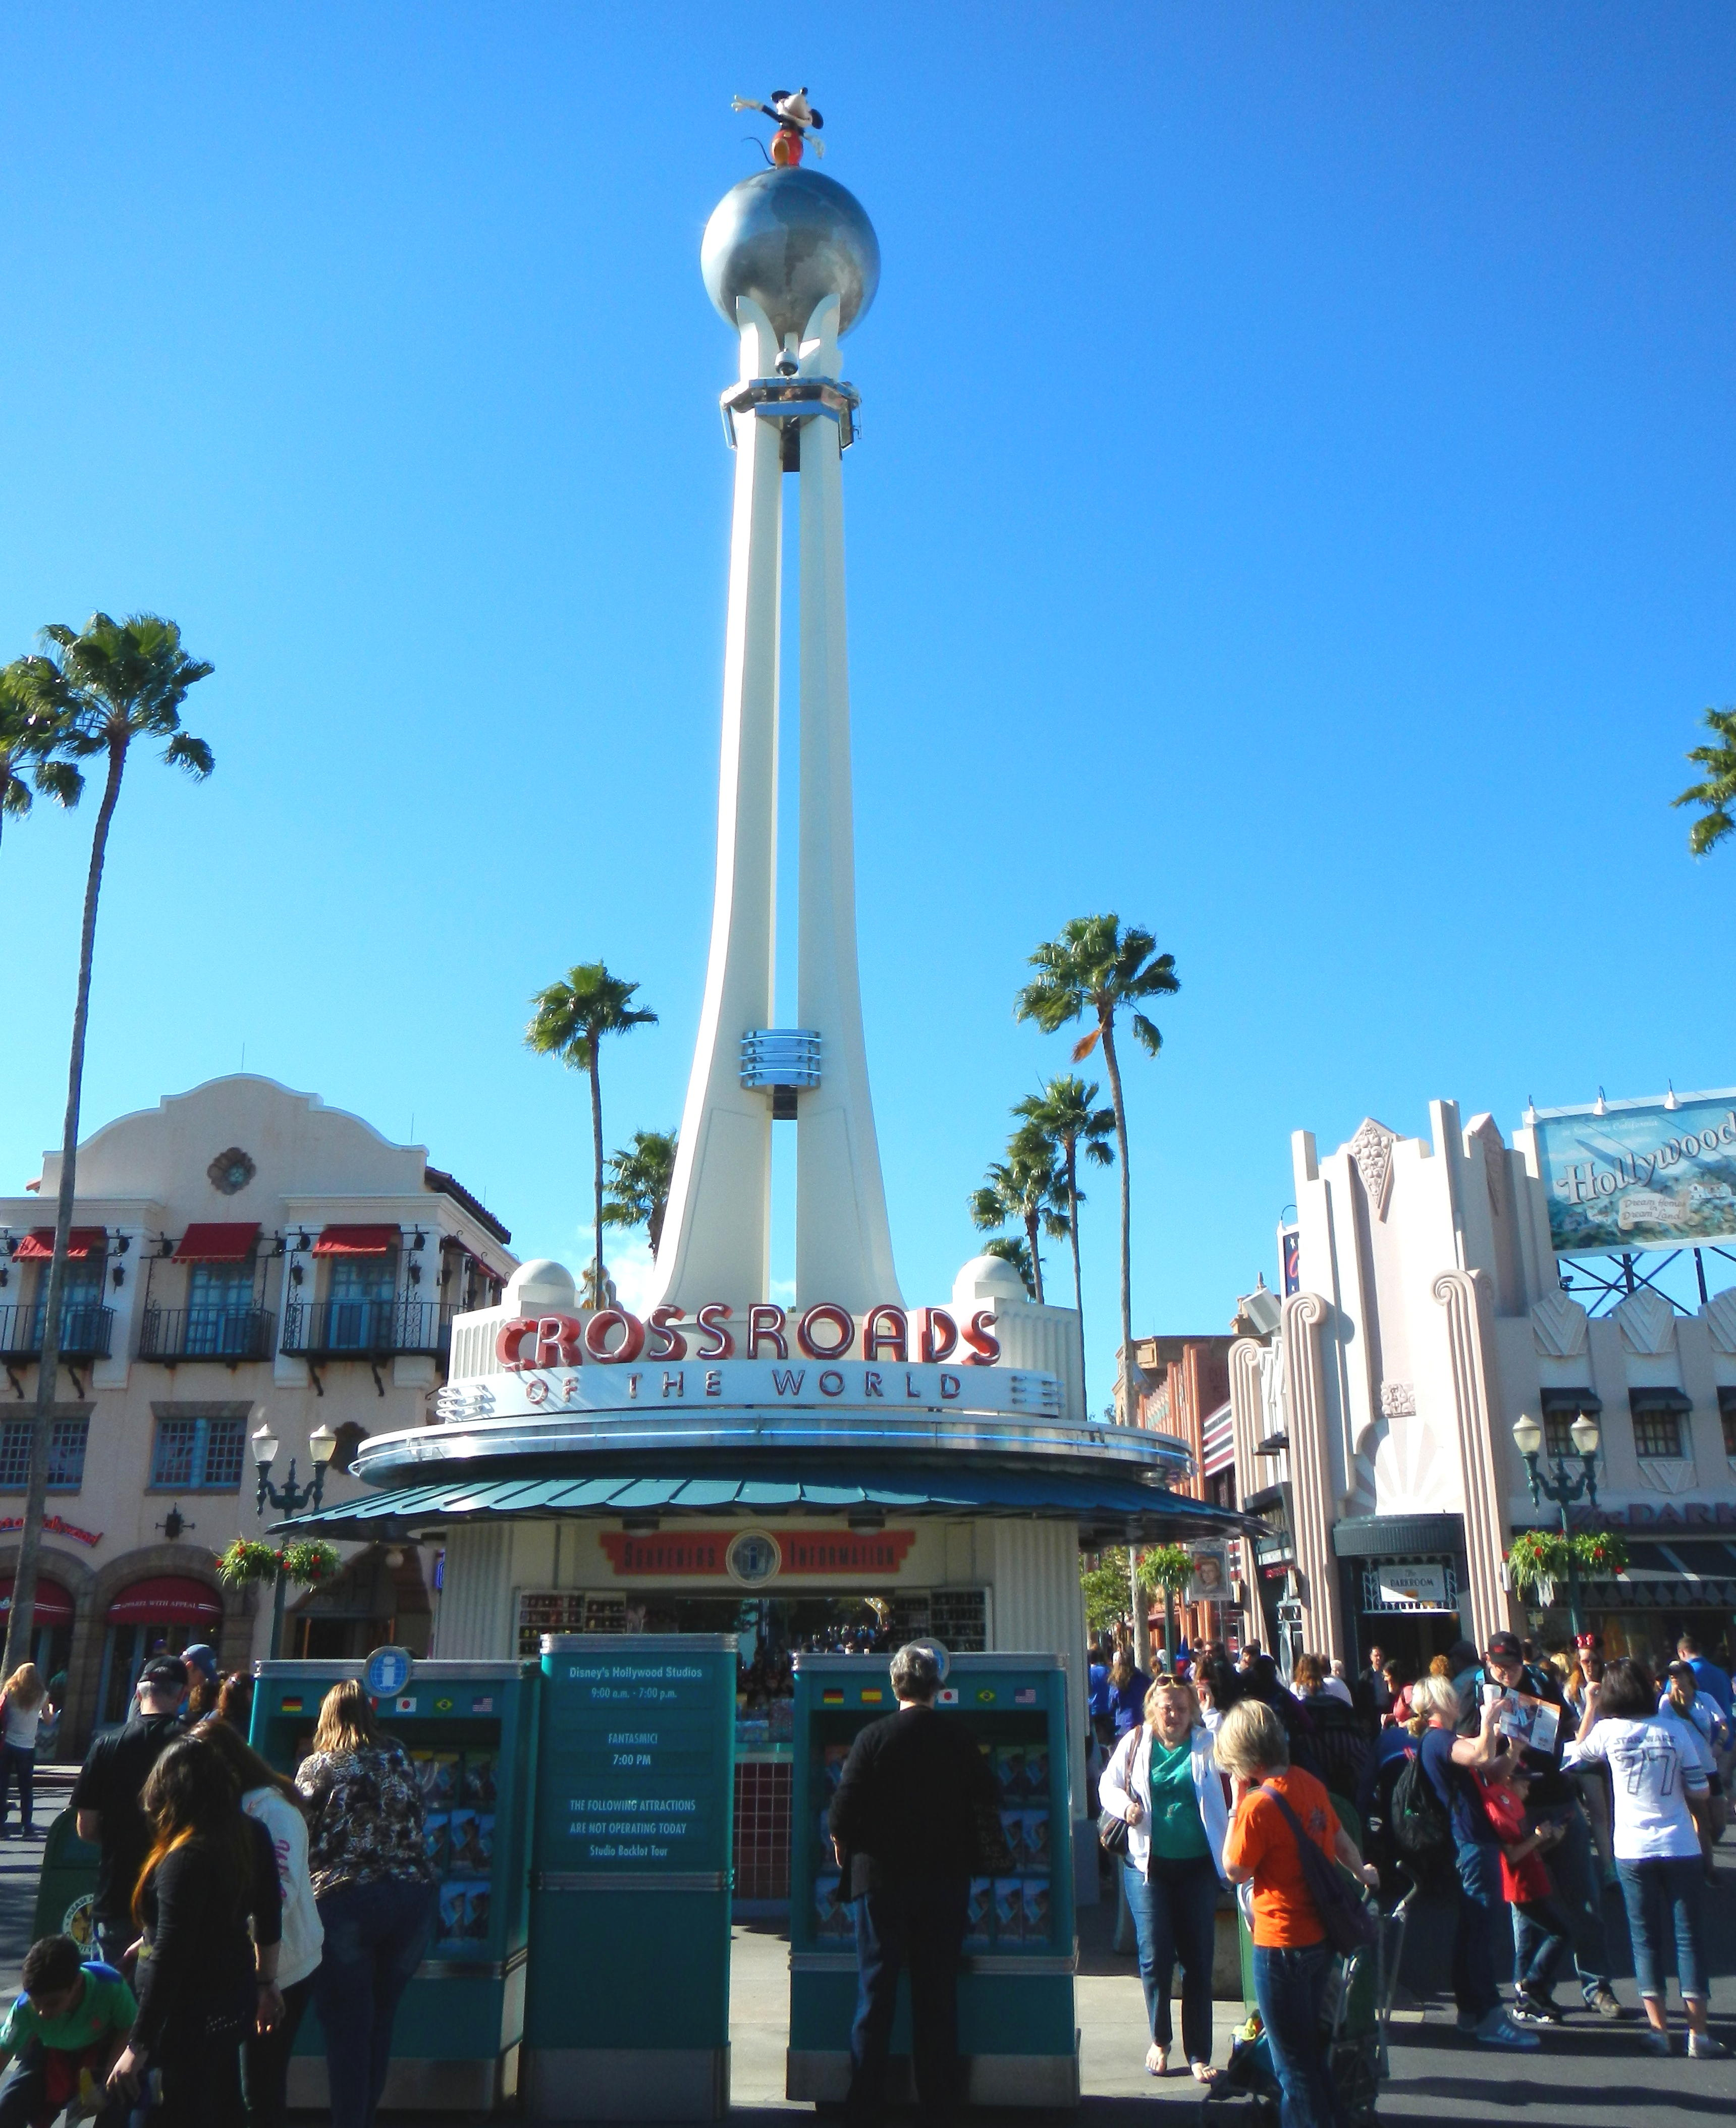 Crossroads of the World at the entrance to Disney's Hollywood Studios.